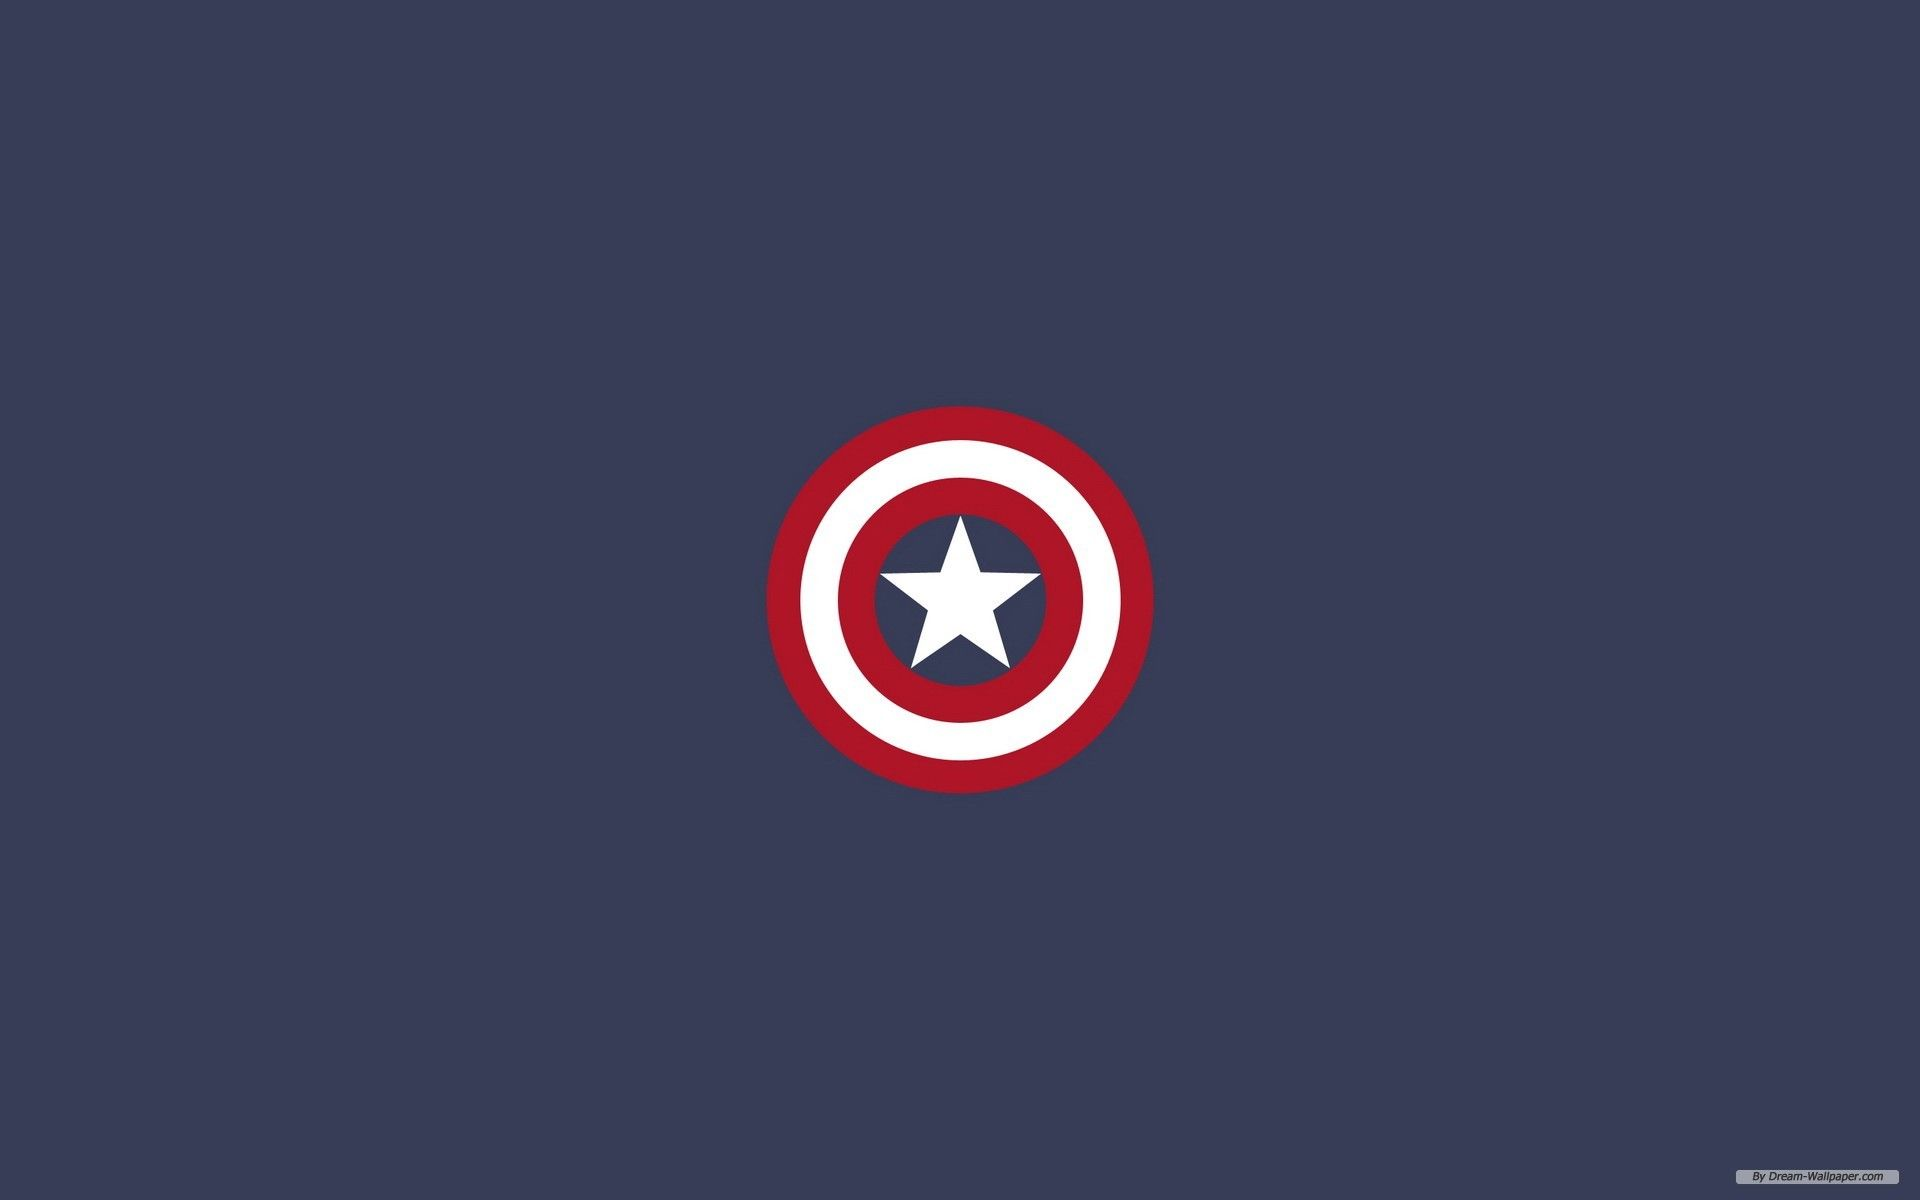 Free Wallpaper Free Art Wallpaper Minimalist Design 1 Captain America Wallpaper Captain America Shield Wallpaper Minimalist Wallpaper